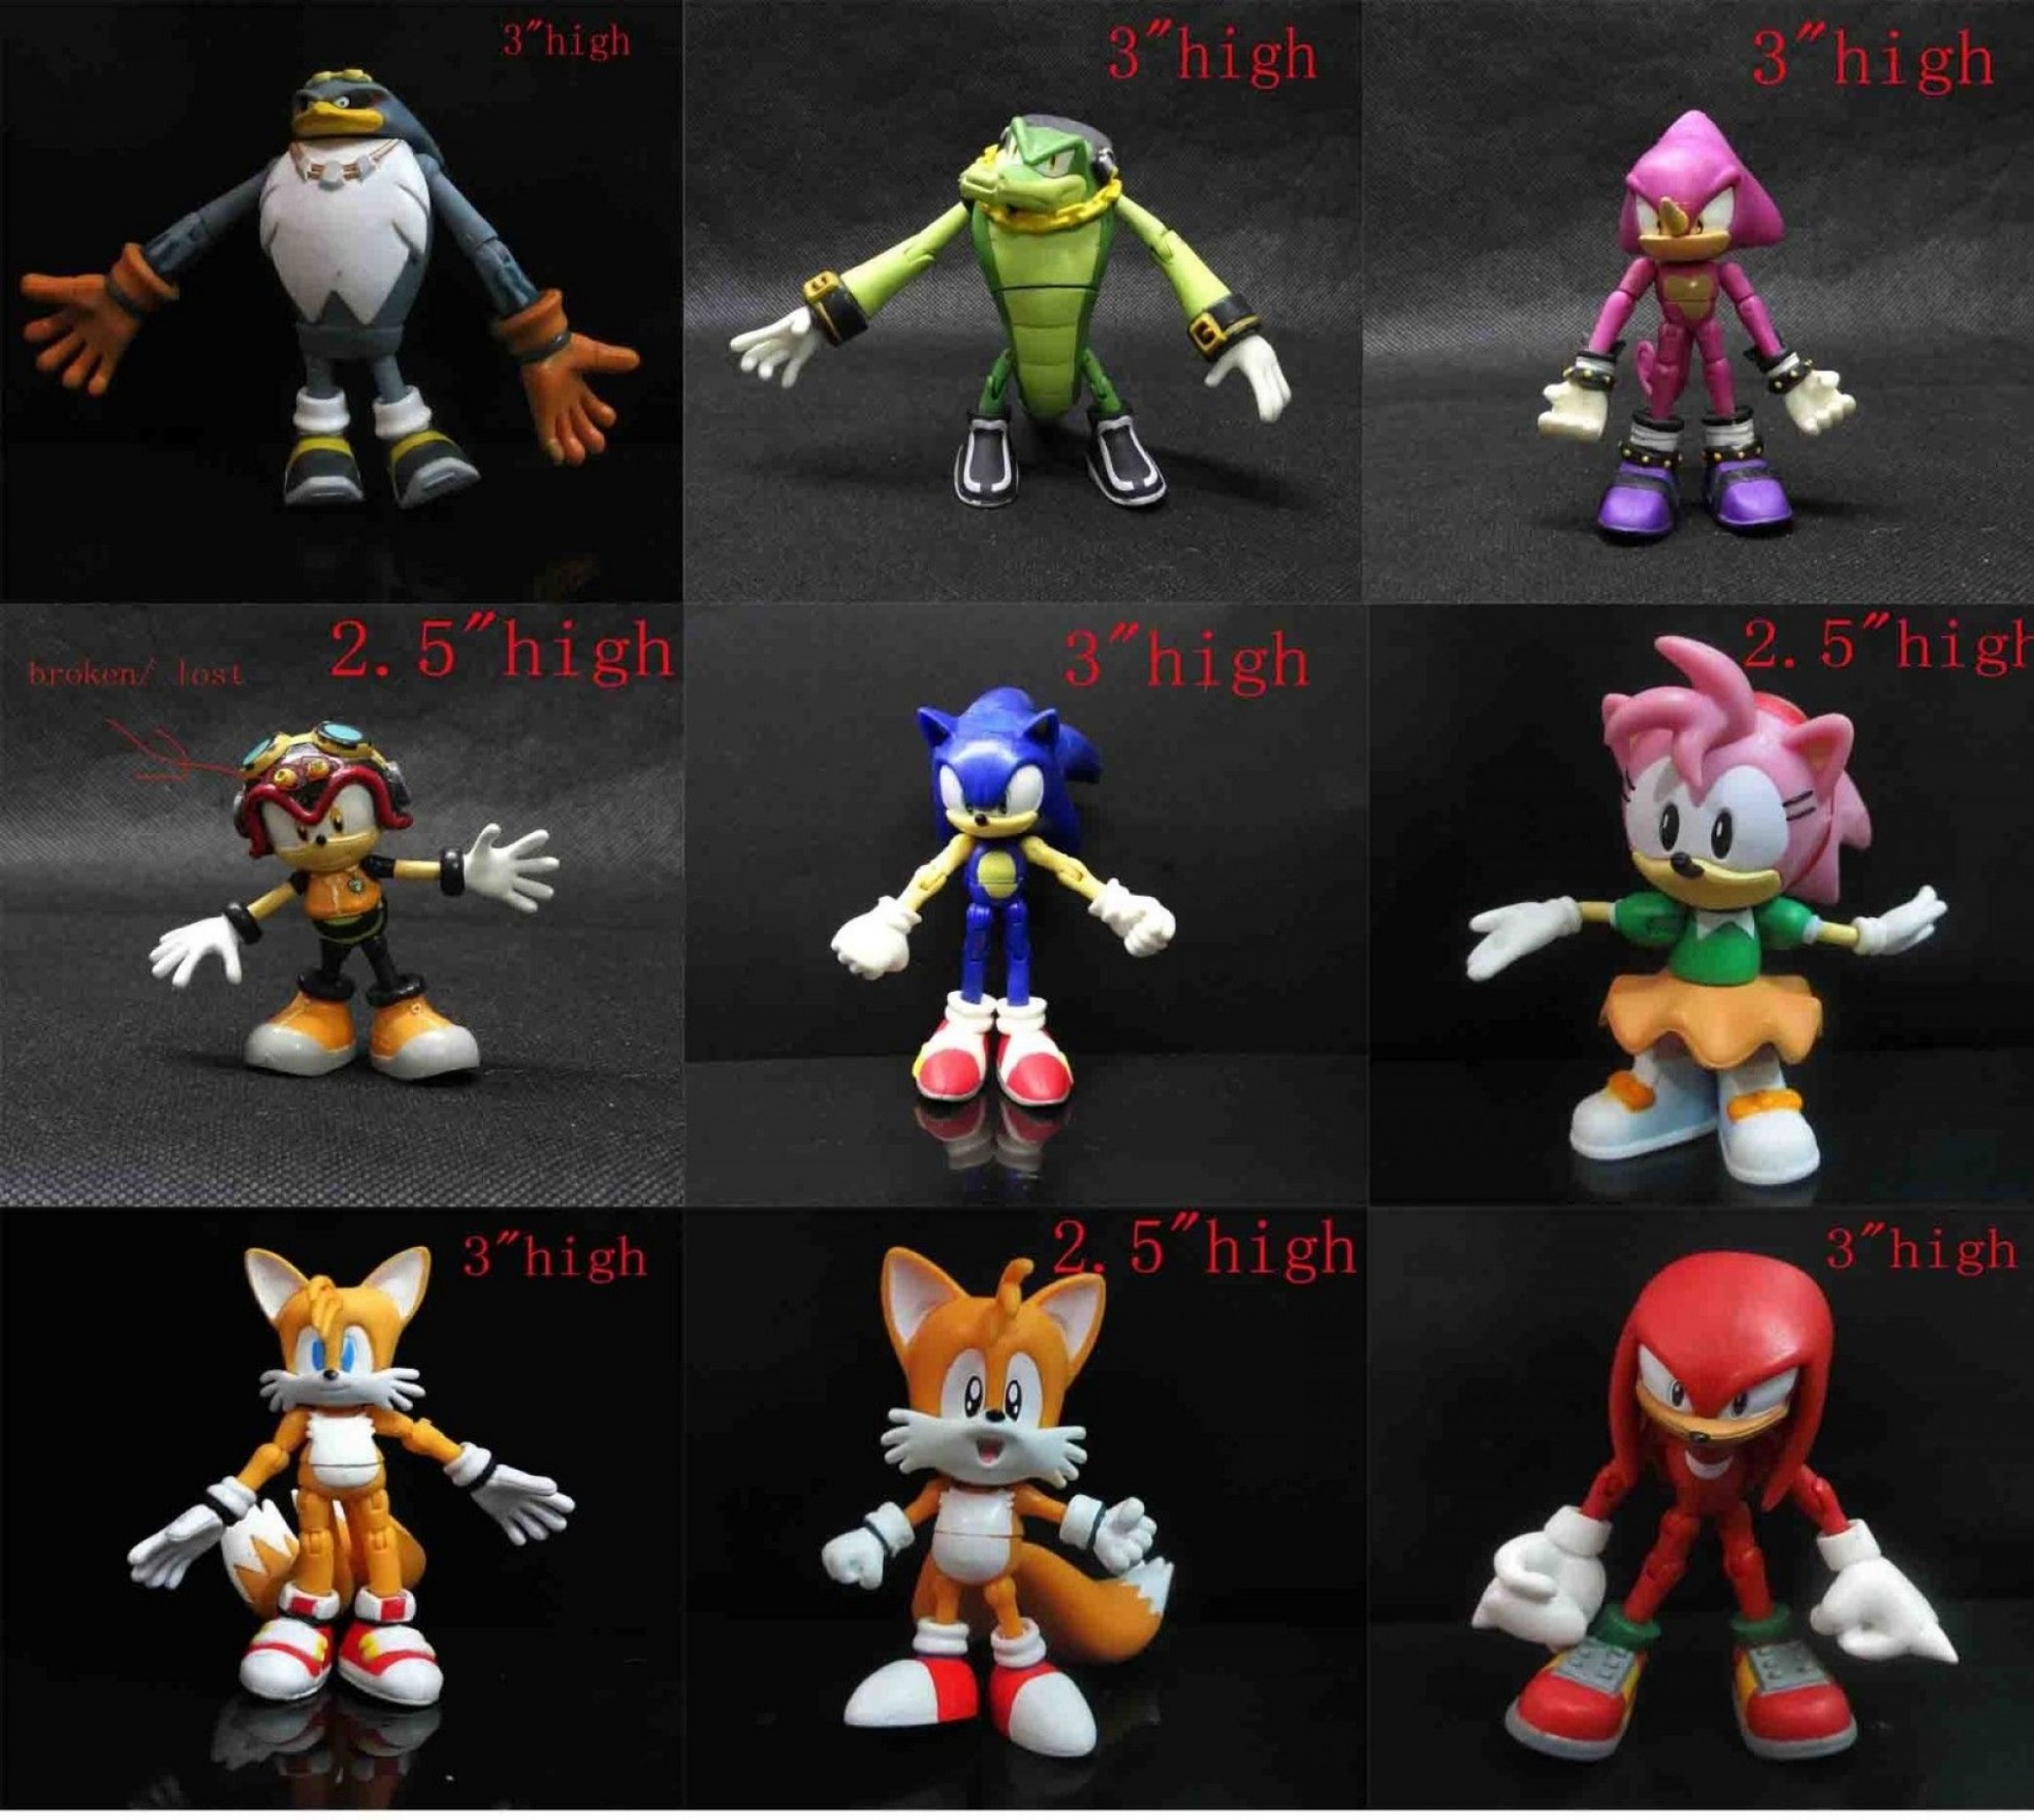 Vector And Espio Toy: Sonic The Hedgehog Vector Espio The Chameleon Super